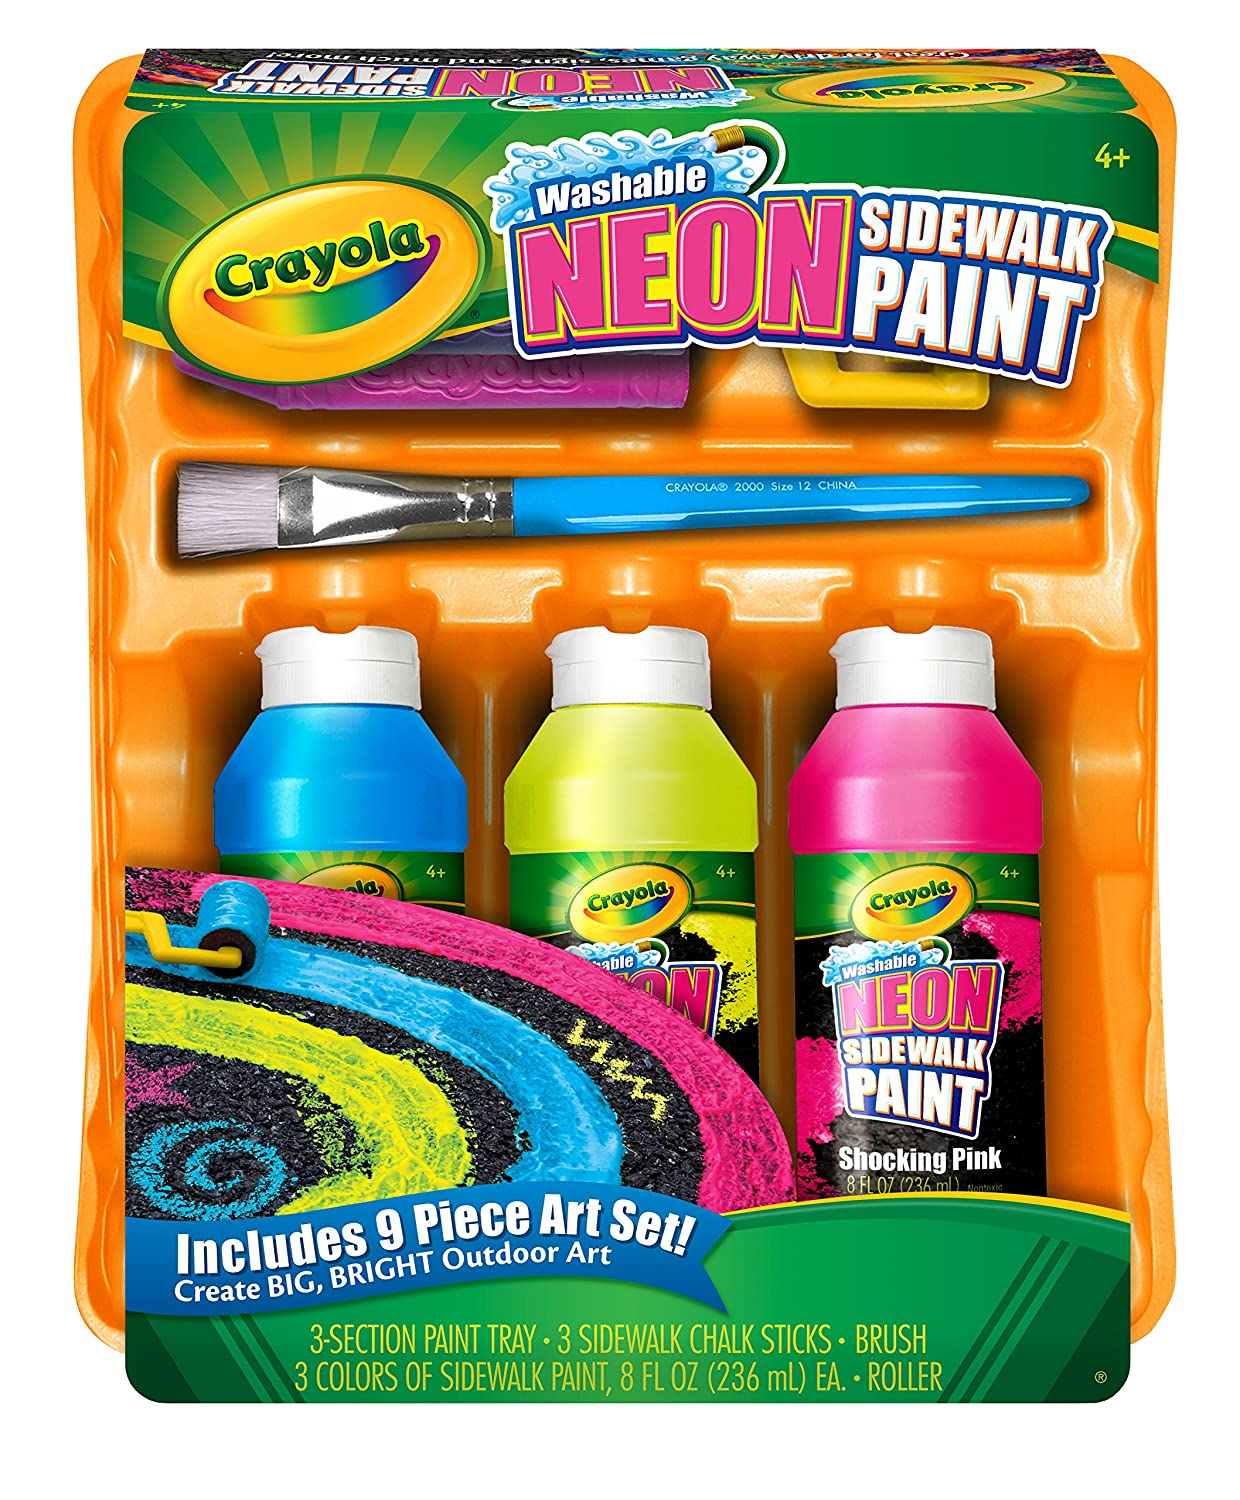 amazoncom crayola washable neon sidewalk paint outdoor art tools 3 neon paint colors paint brush roller and 3 sidewalk chalk sticks toys games